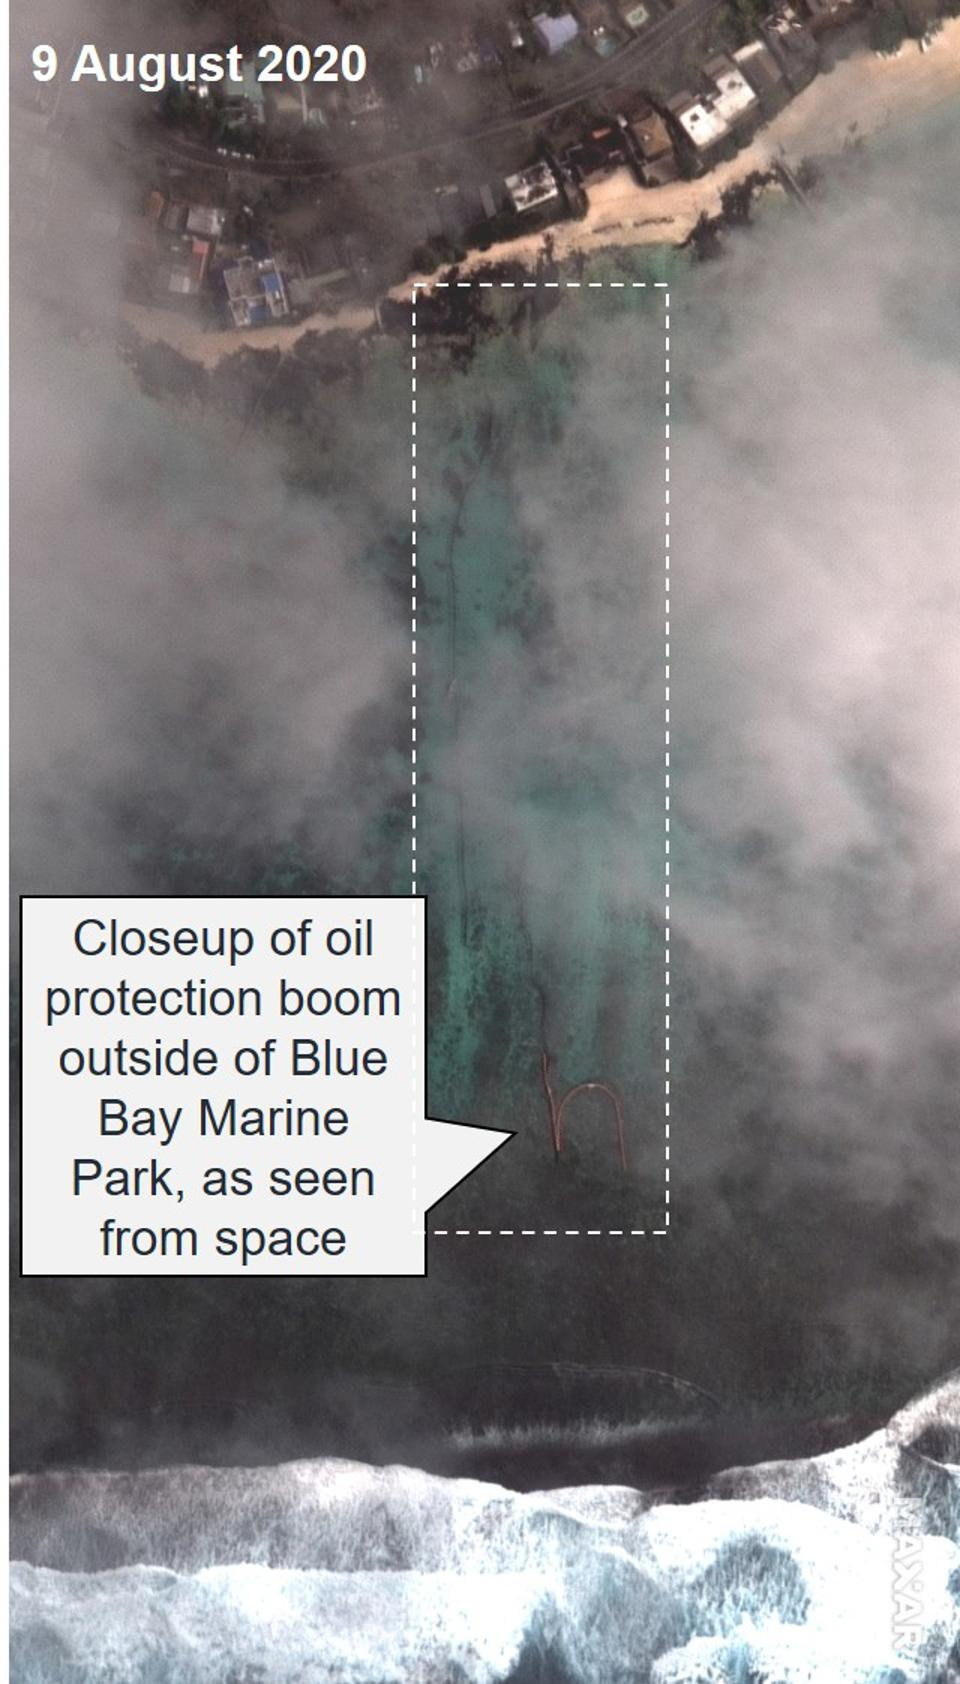 9 August 2020: Closeup of Oil Protection Boom around Blue Bay Marine Park, as seen from space